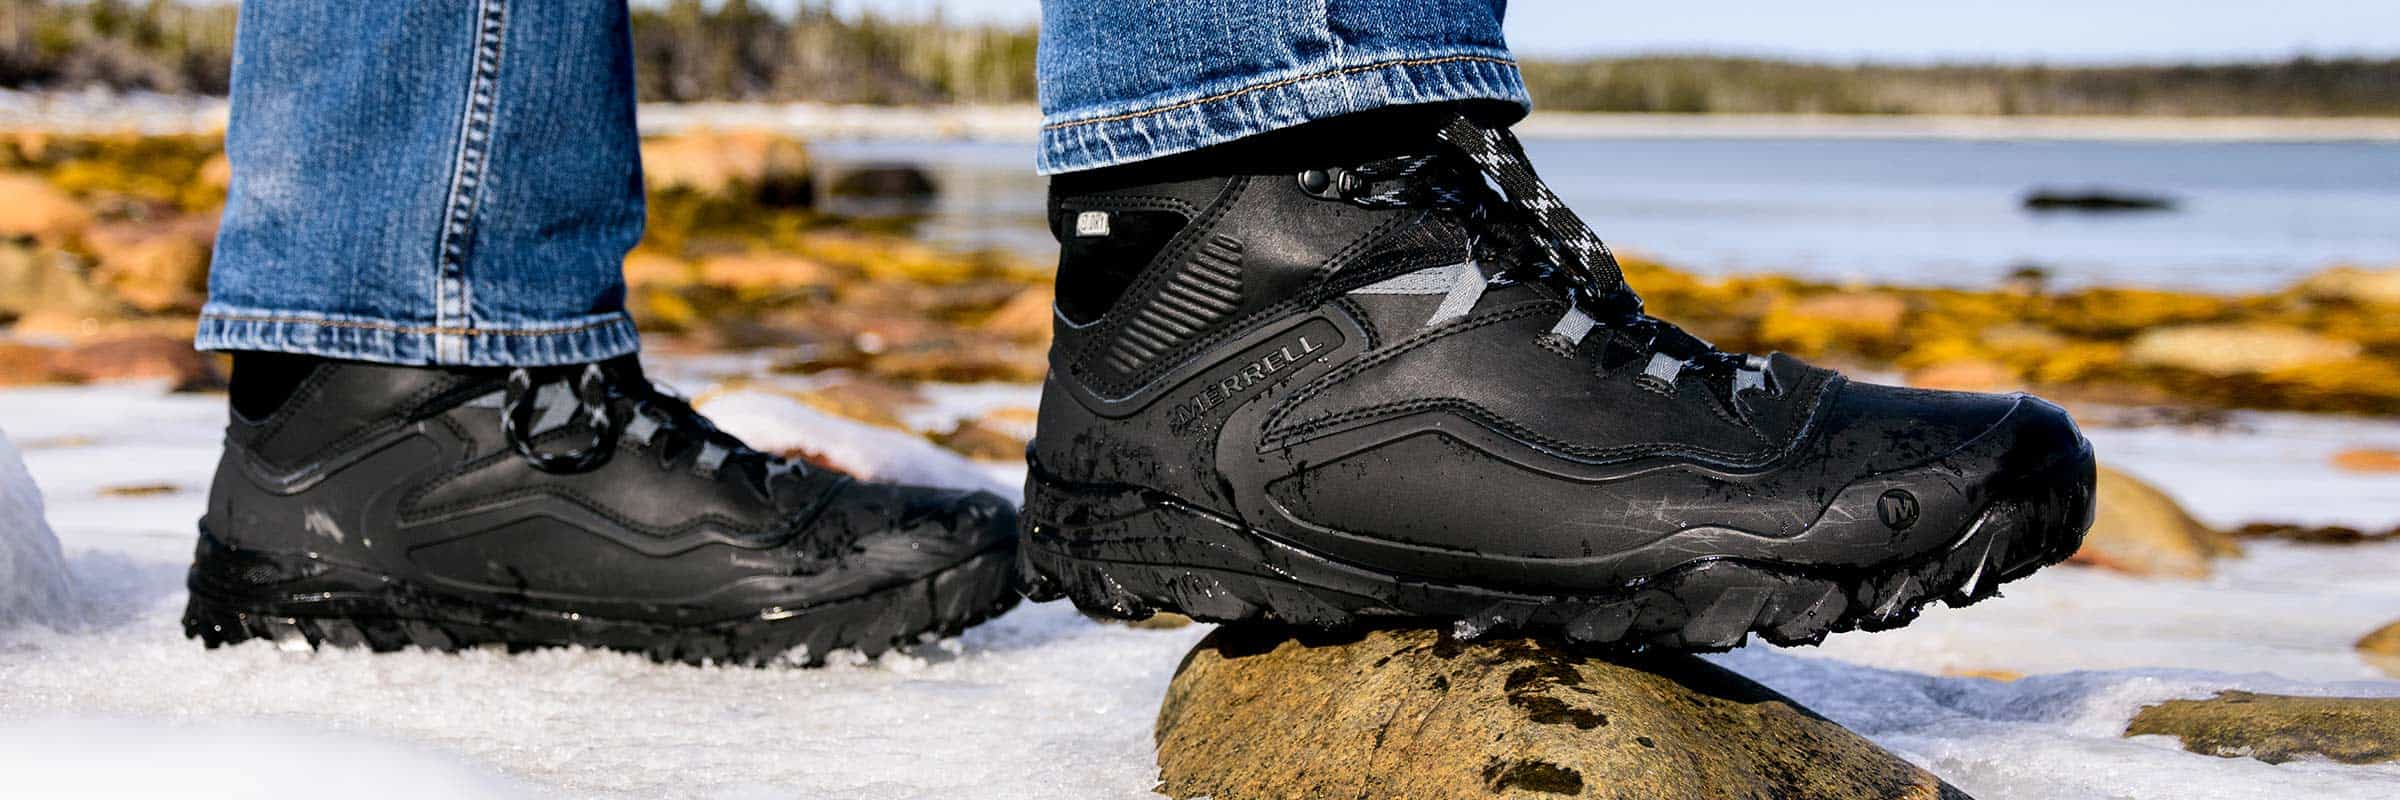 Merrell. Merrell Overlook 6 Ice+ Boots Reviewed